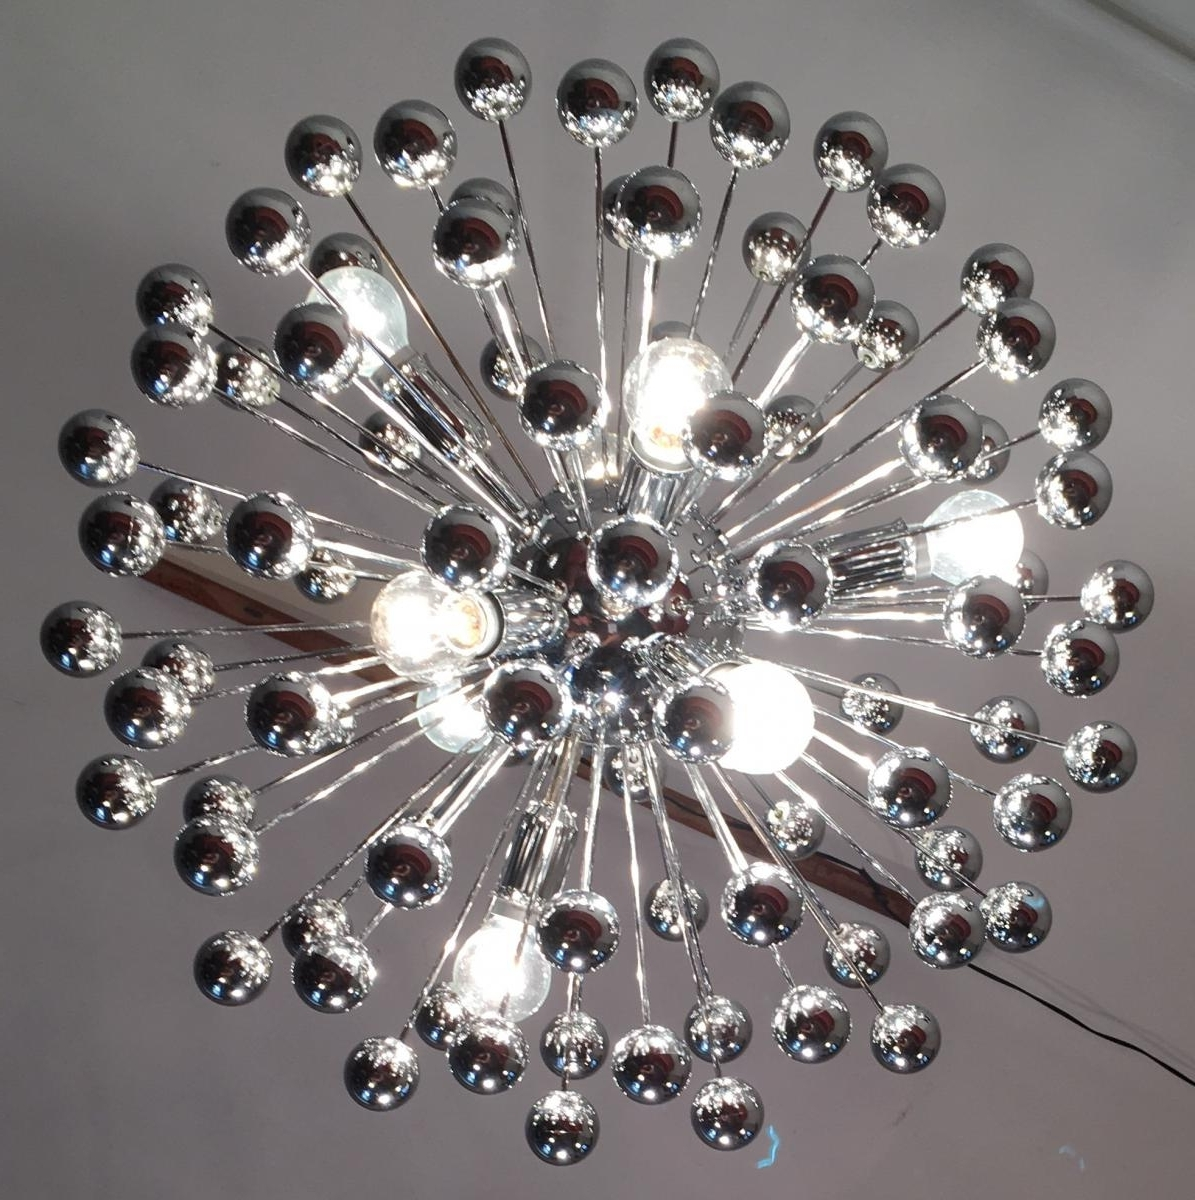 Mid Century Italian Chrome Multi Sphere Sputnik Chandelier, 1960S Inside Newest Chrome Sputnik Chandeliers (View 11 of 20)